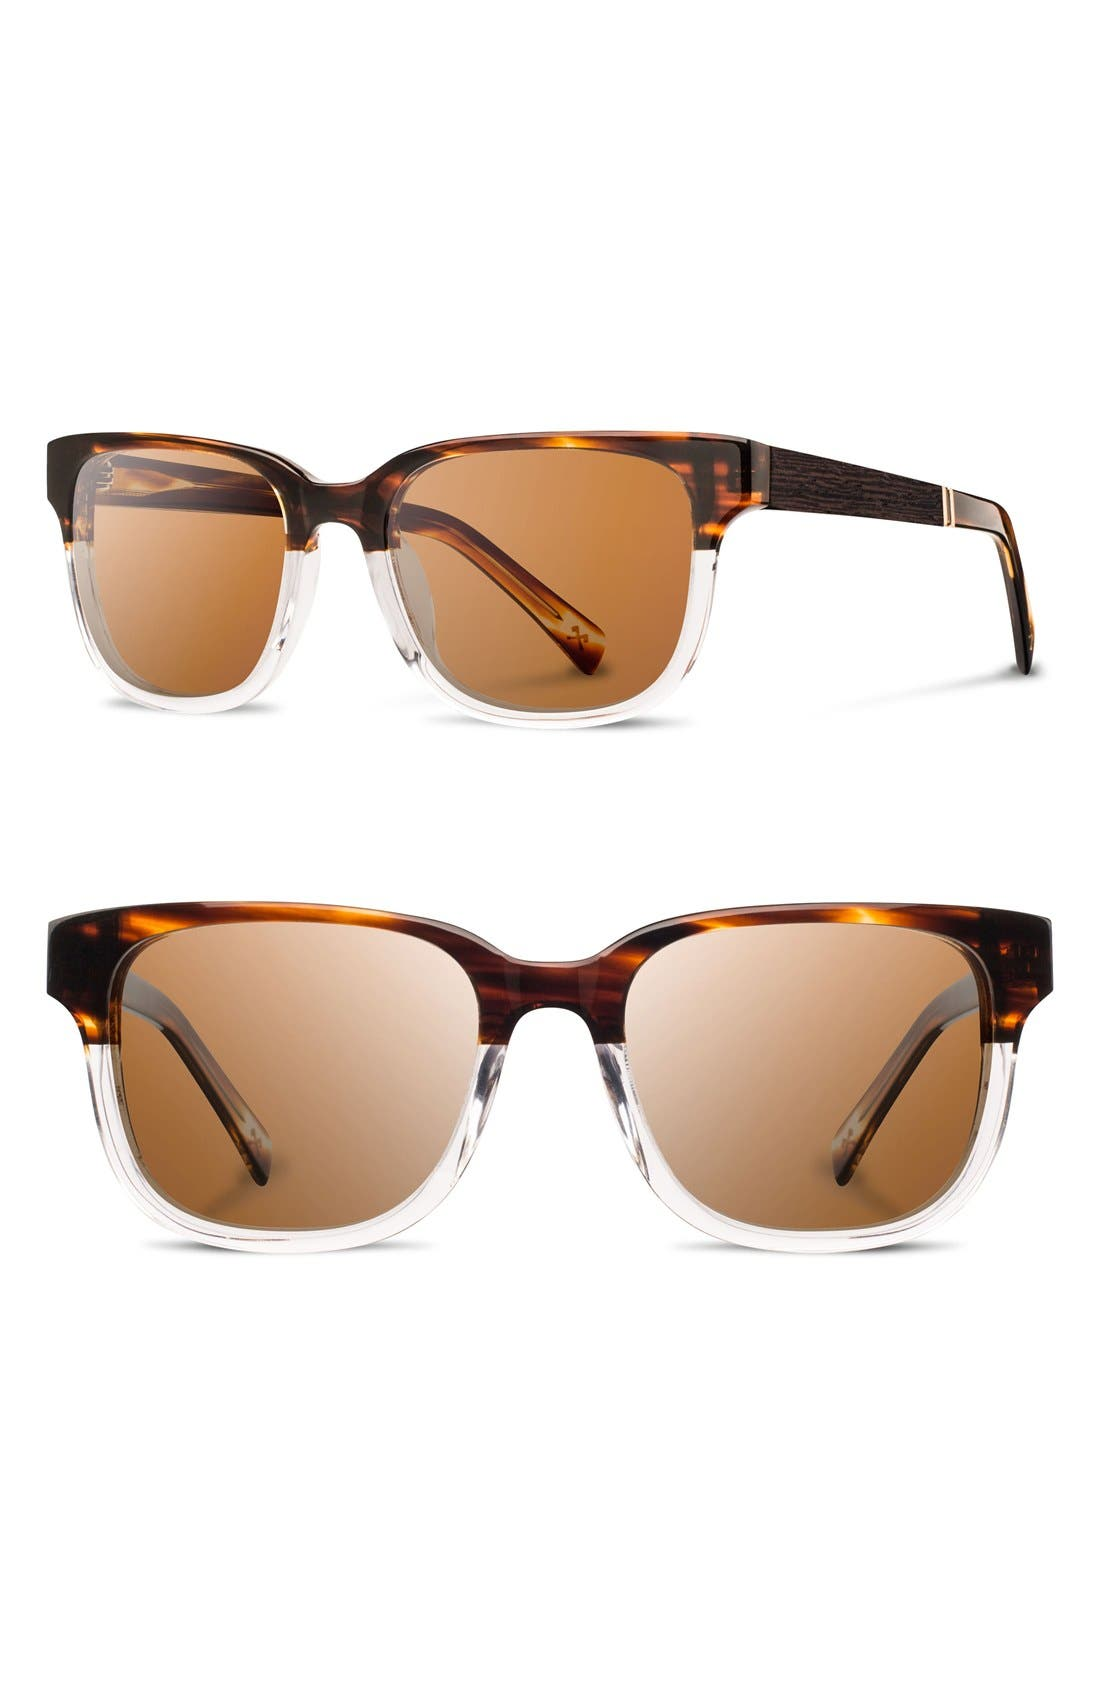 SHWOOD 'Prescott' 52mm Polarized Acetate & Wood Sunglasses